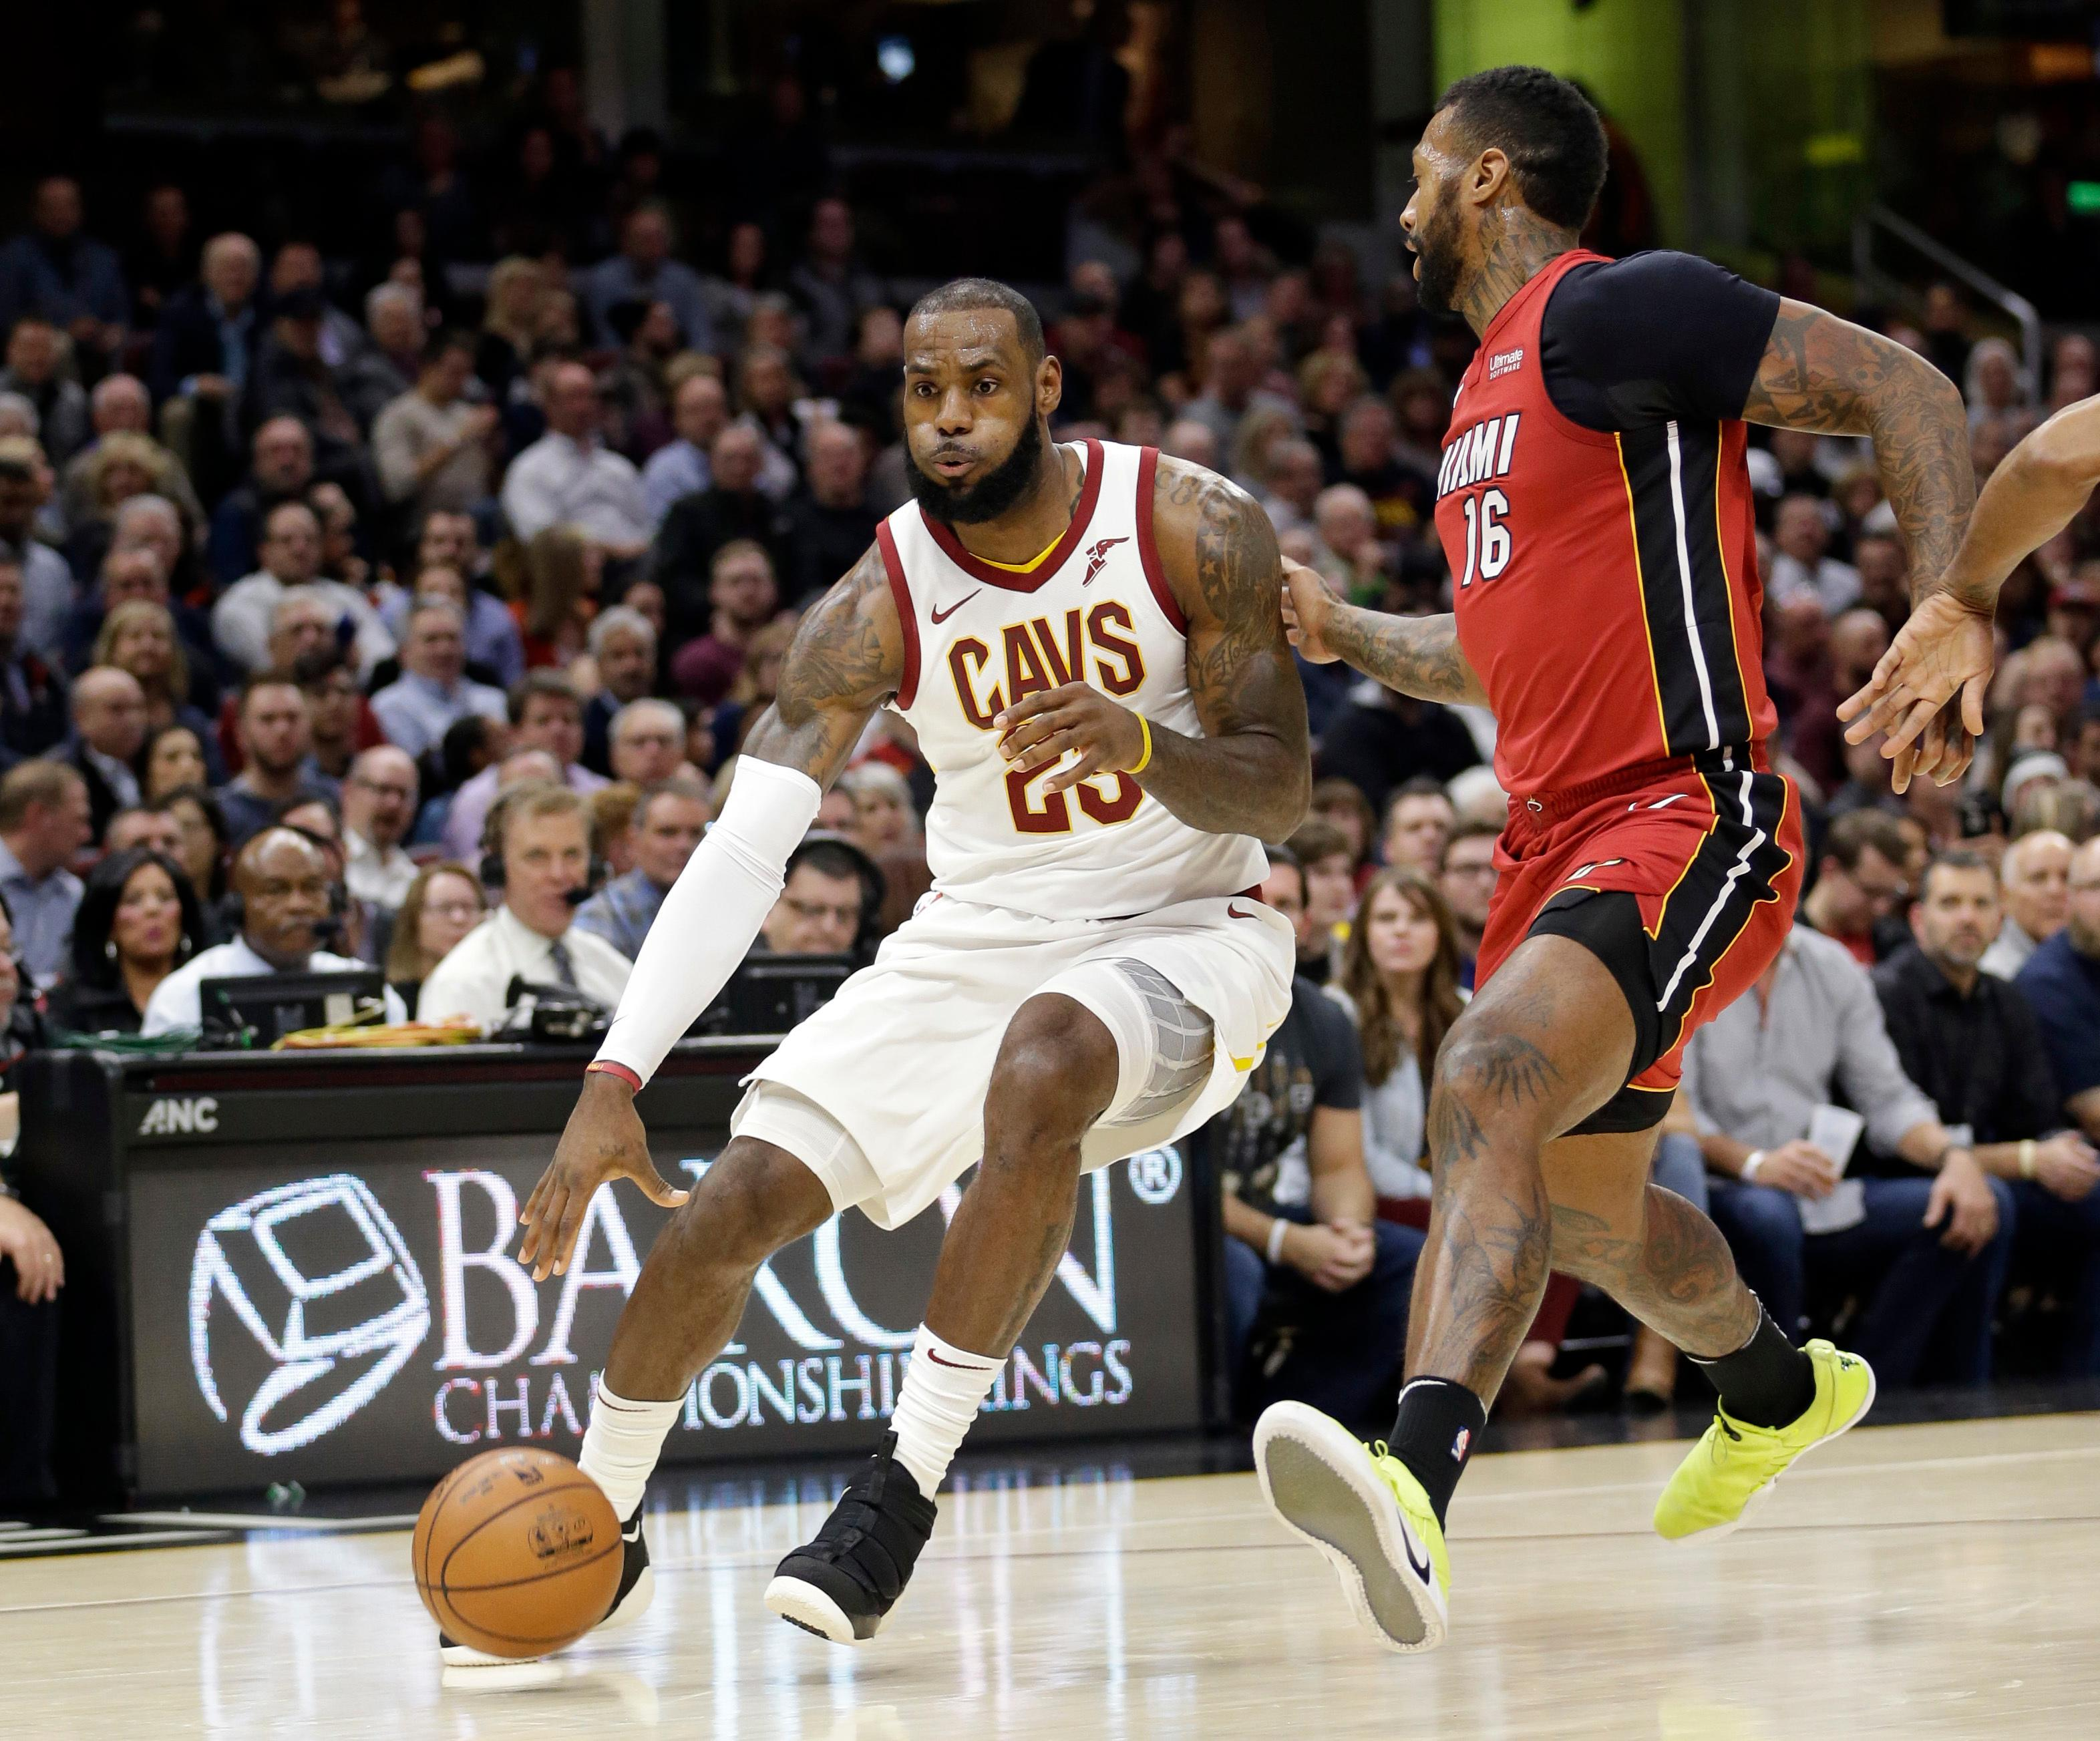 Cleveland Cavaliers' LeBron James (23) drives against Miami Heat's James Johnson (16) in the first half of an NBA basketball game, Tuesday, Nov. 28, 2017, in Cleveland. (AP Photo/Tony Dejak)